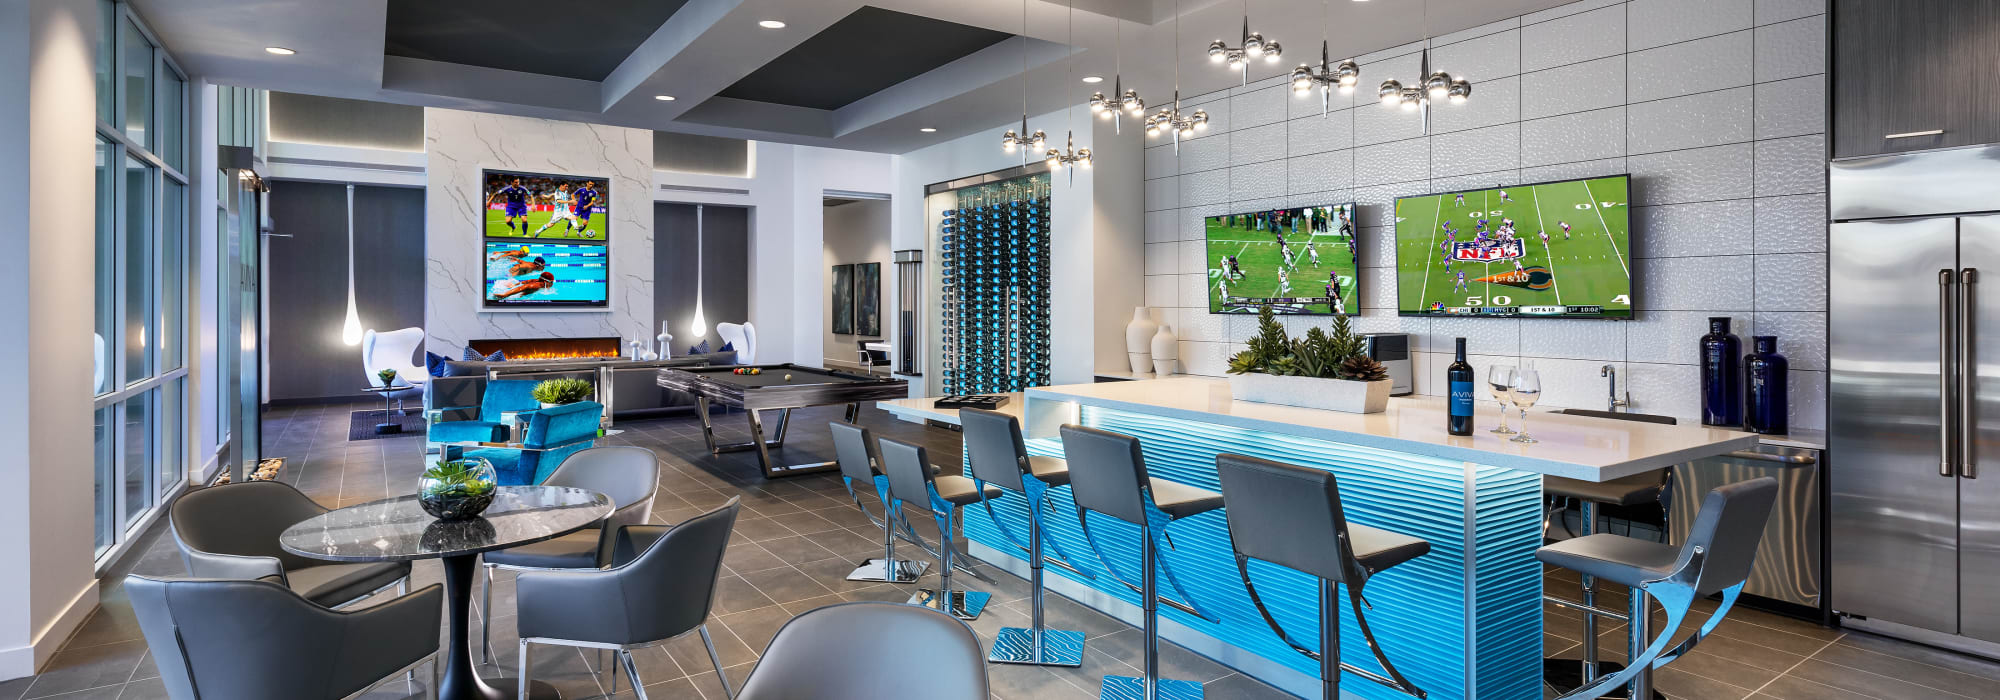 Spacious clubhouse to entertain friends and family at Aviva in Mesa, Arizona